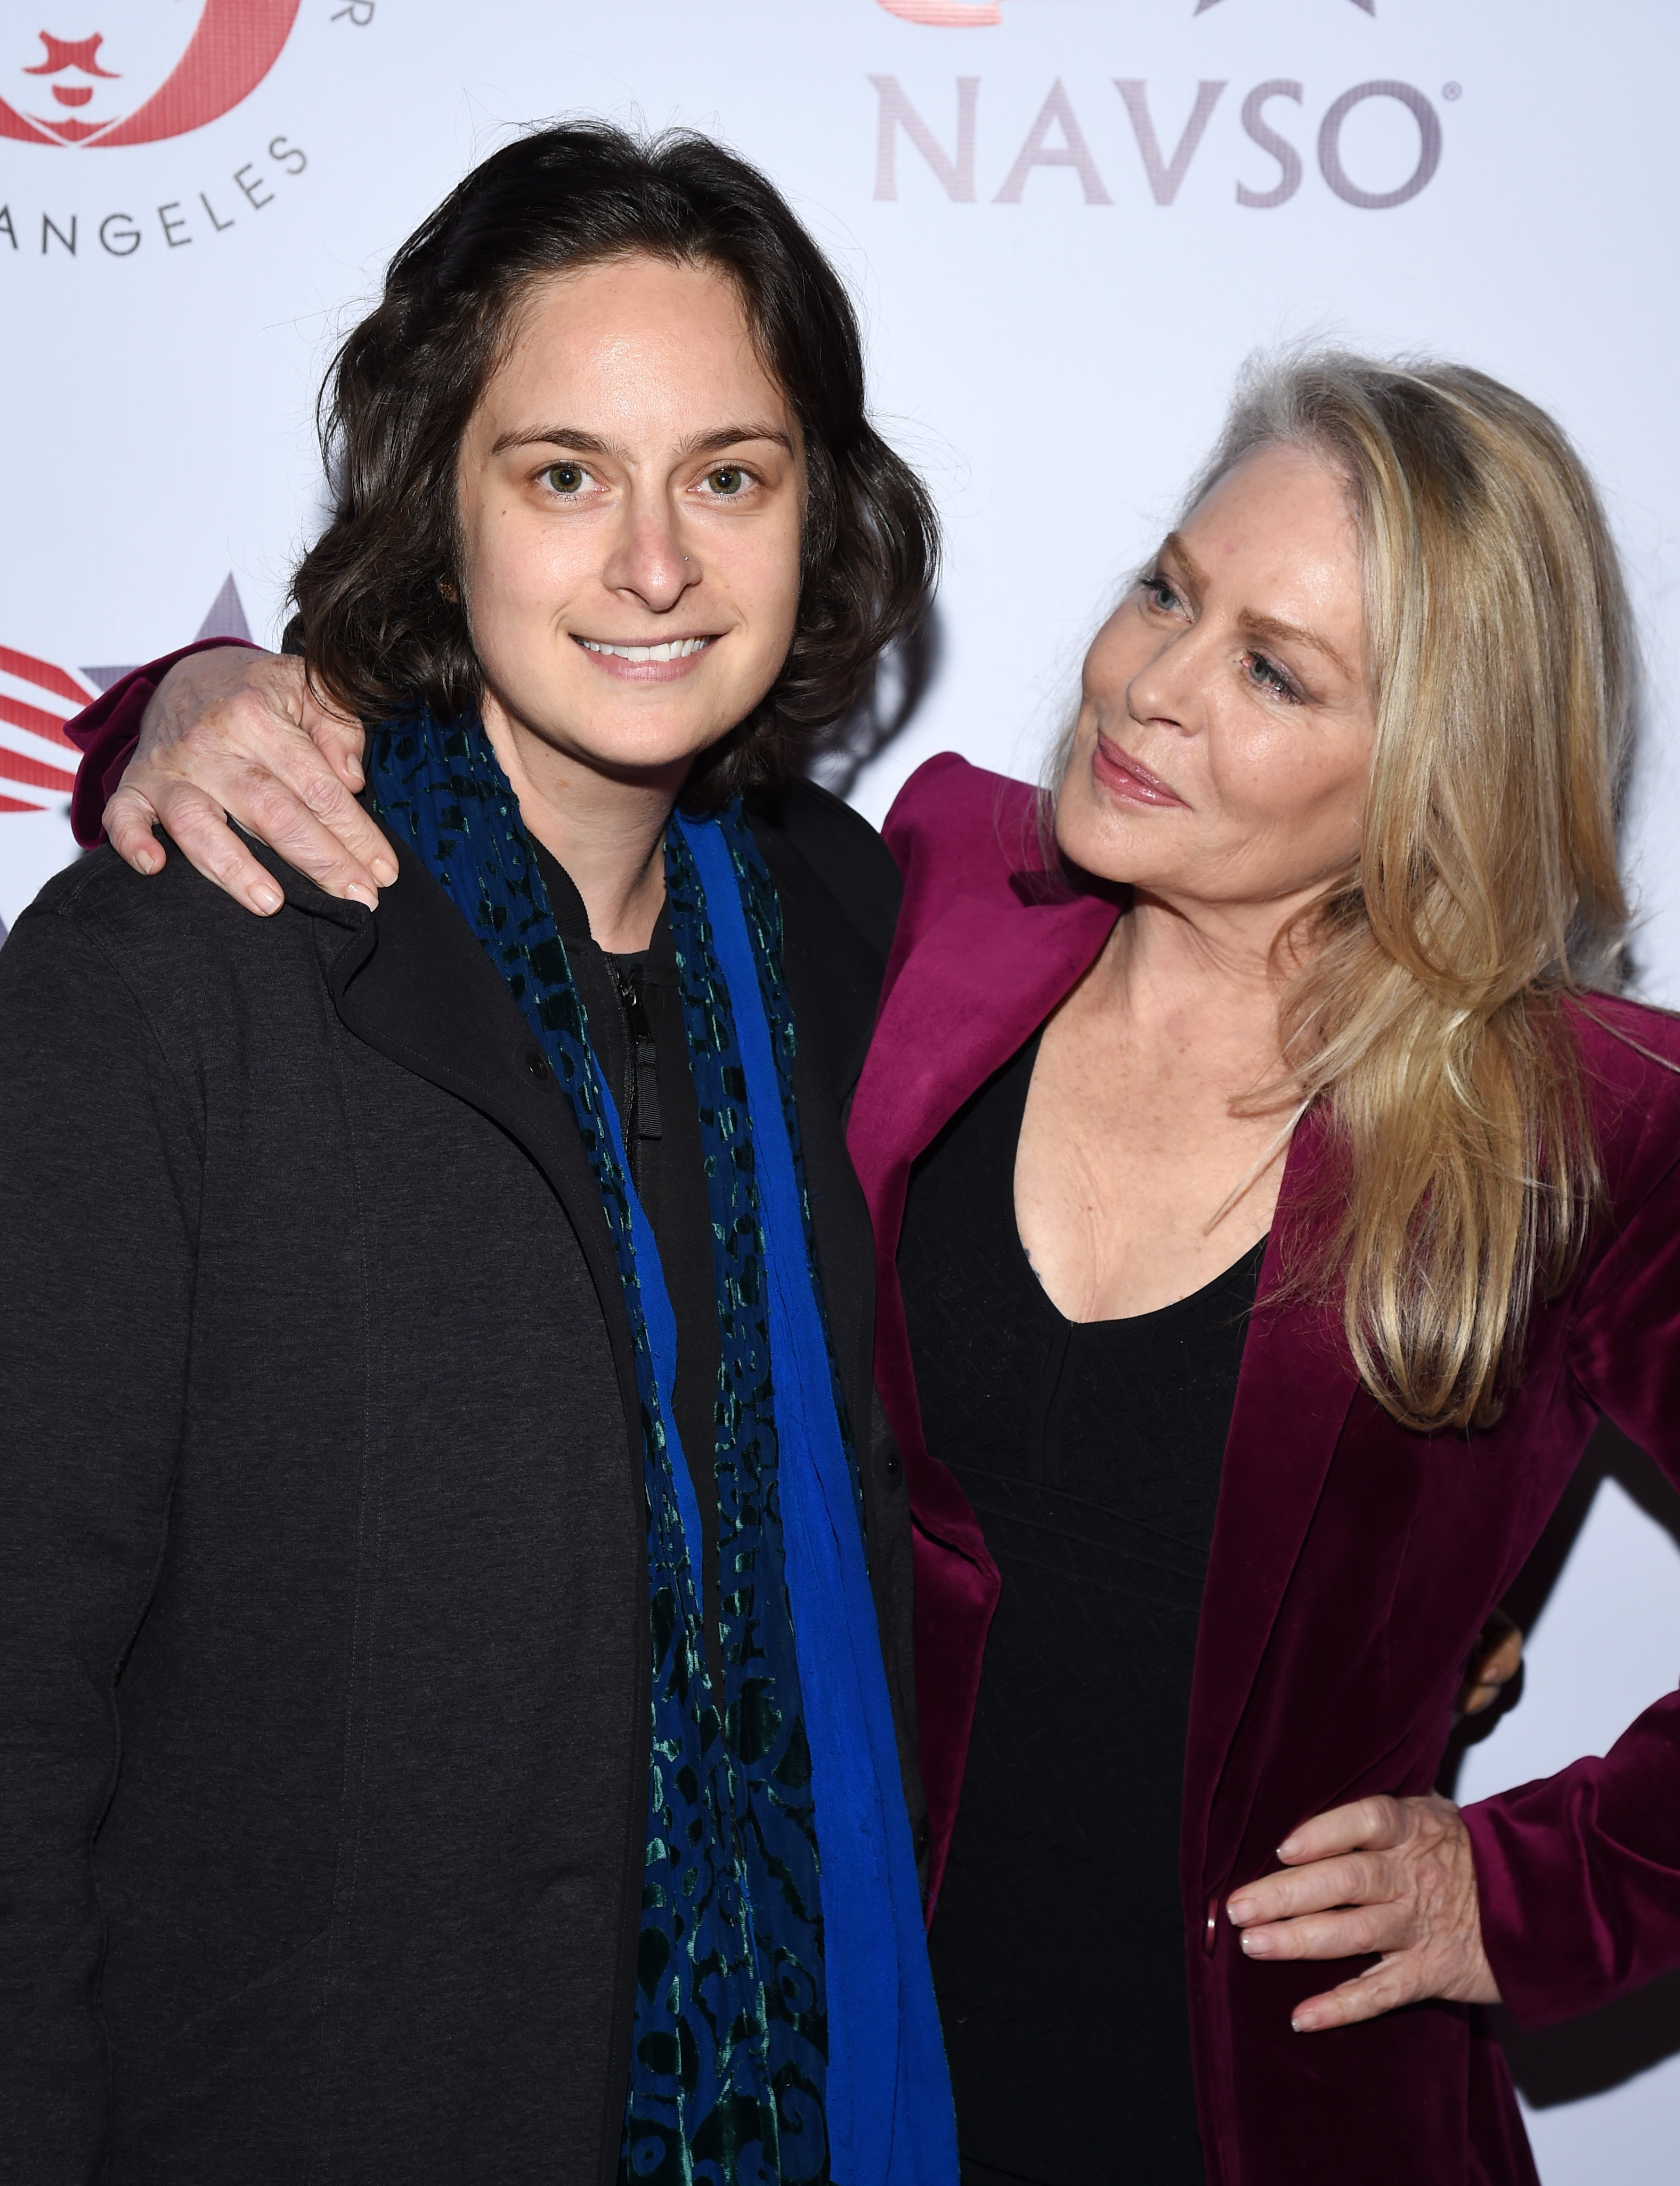 Producer and director Julie Pacino and actress Beverly D'Angelo at the VIP post show reception at Via Porto on March 08, 2020 | Photo: Getty Images